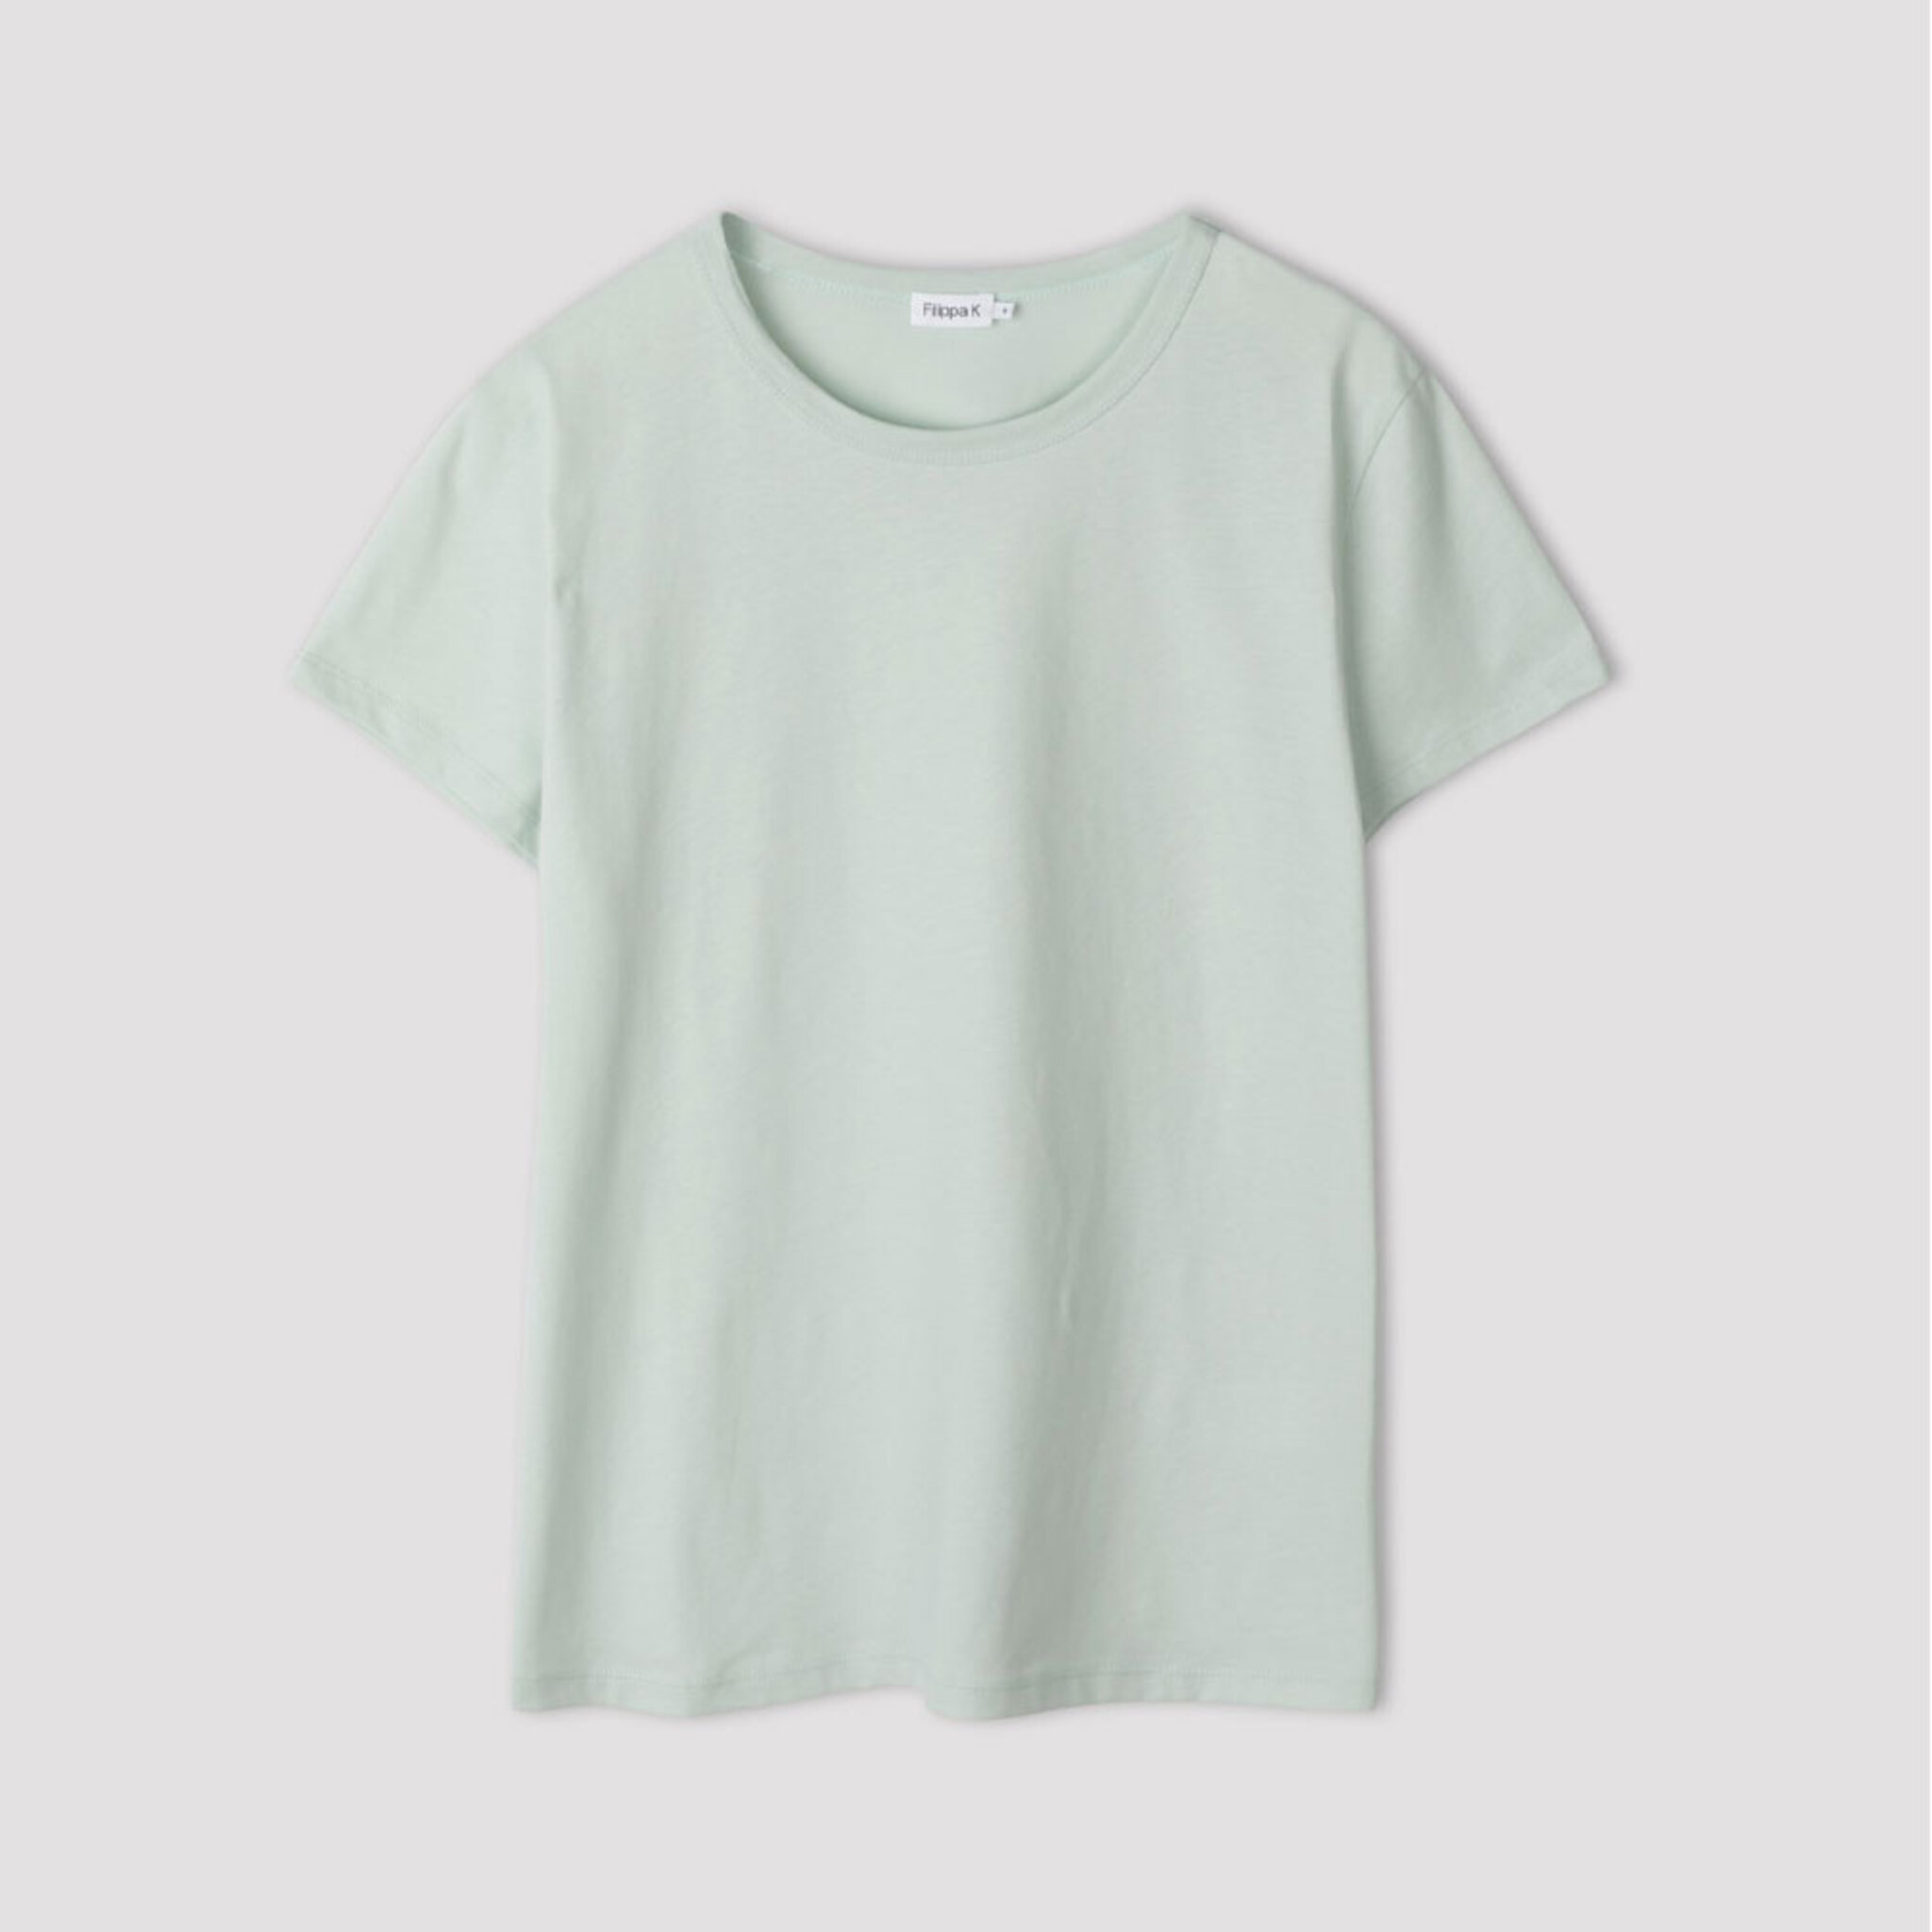 Edna T Shirt, faded turquoise